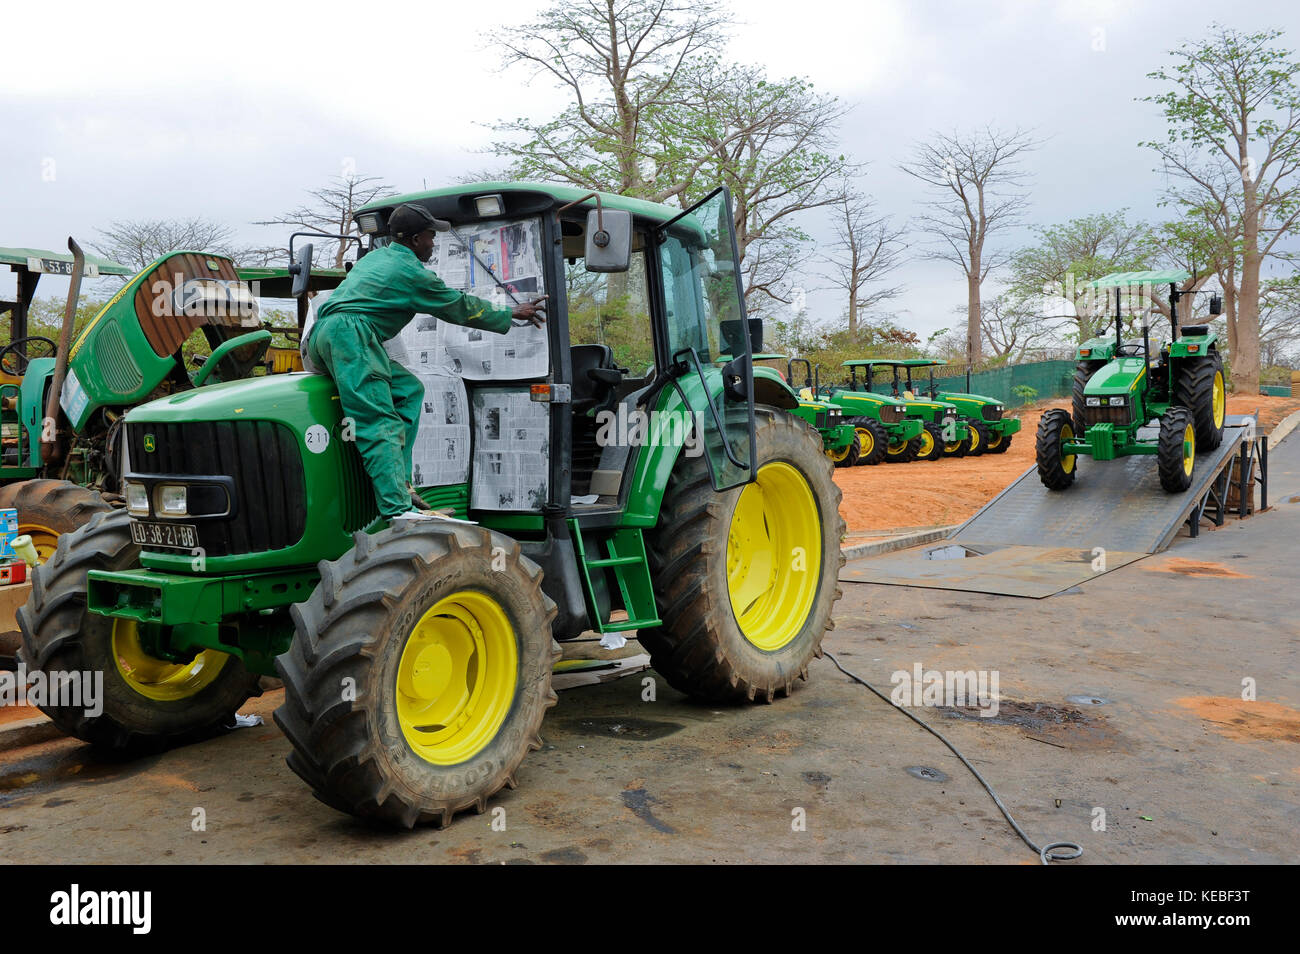 ANGOLA John Deere farming machines Distributor and service LonAgro at Estrada de Catete, workshop for service - Stock Image